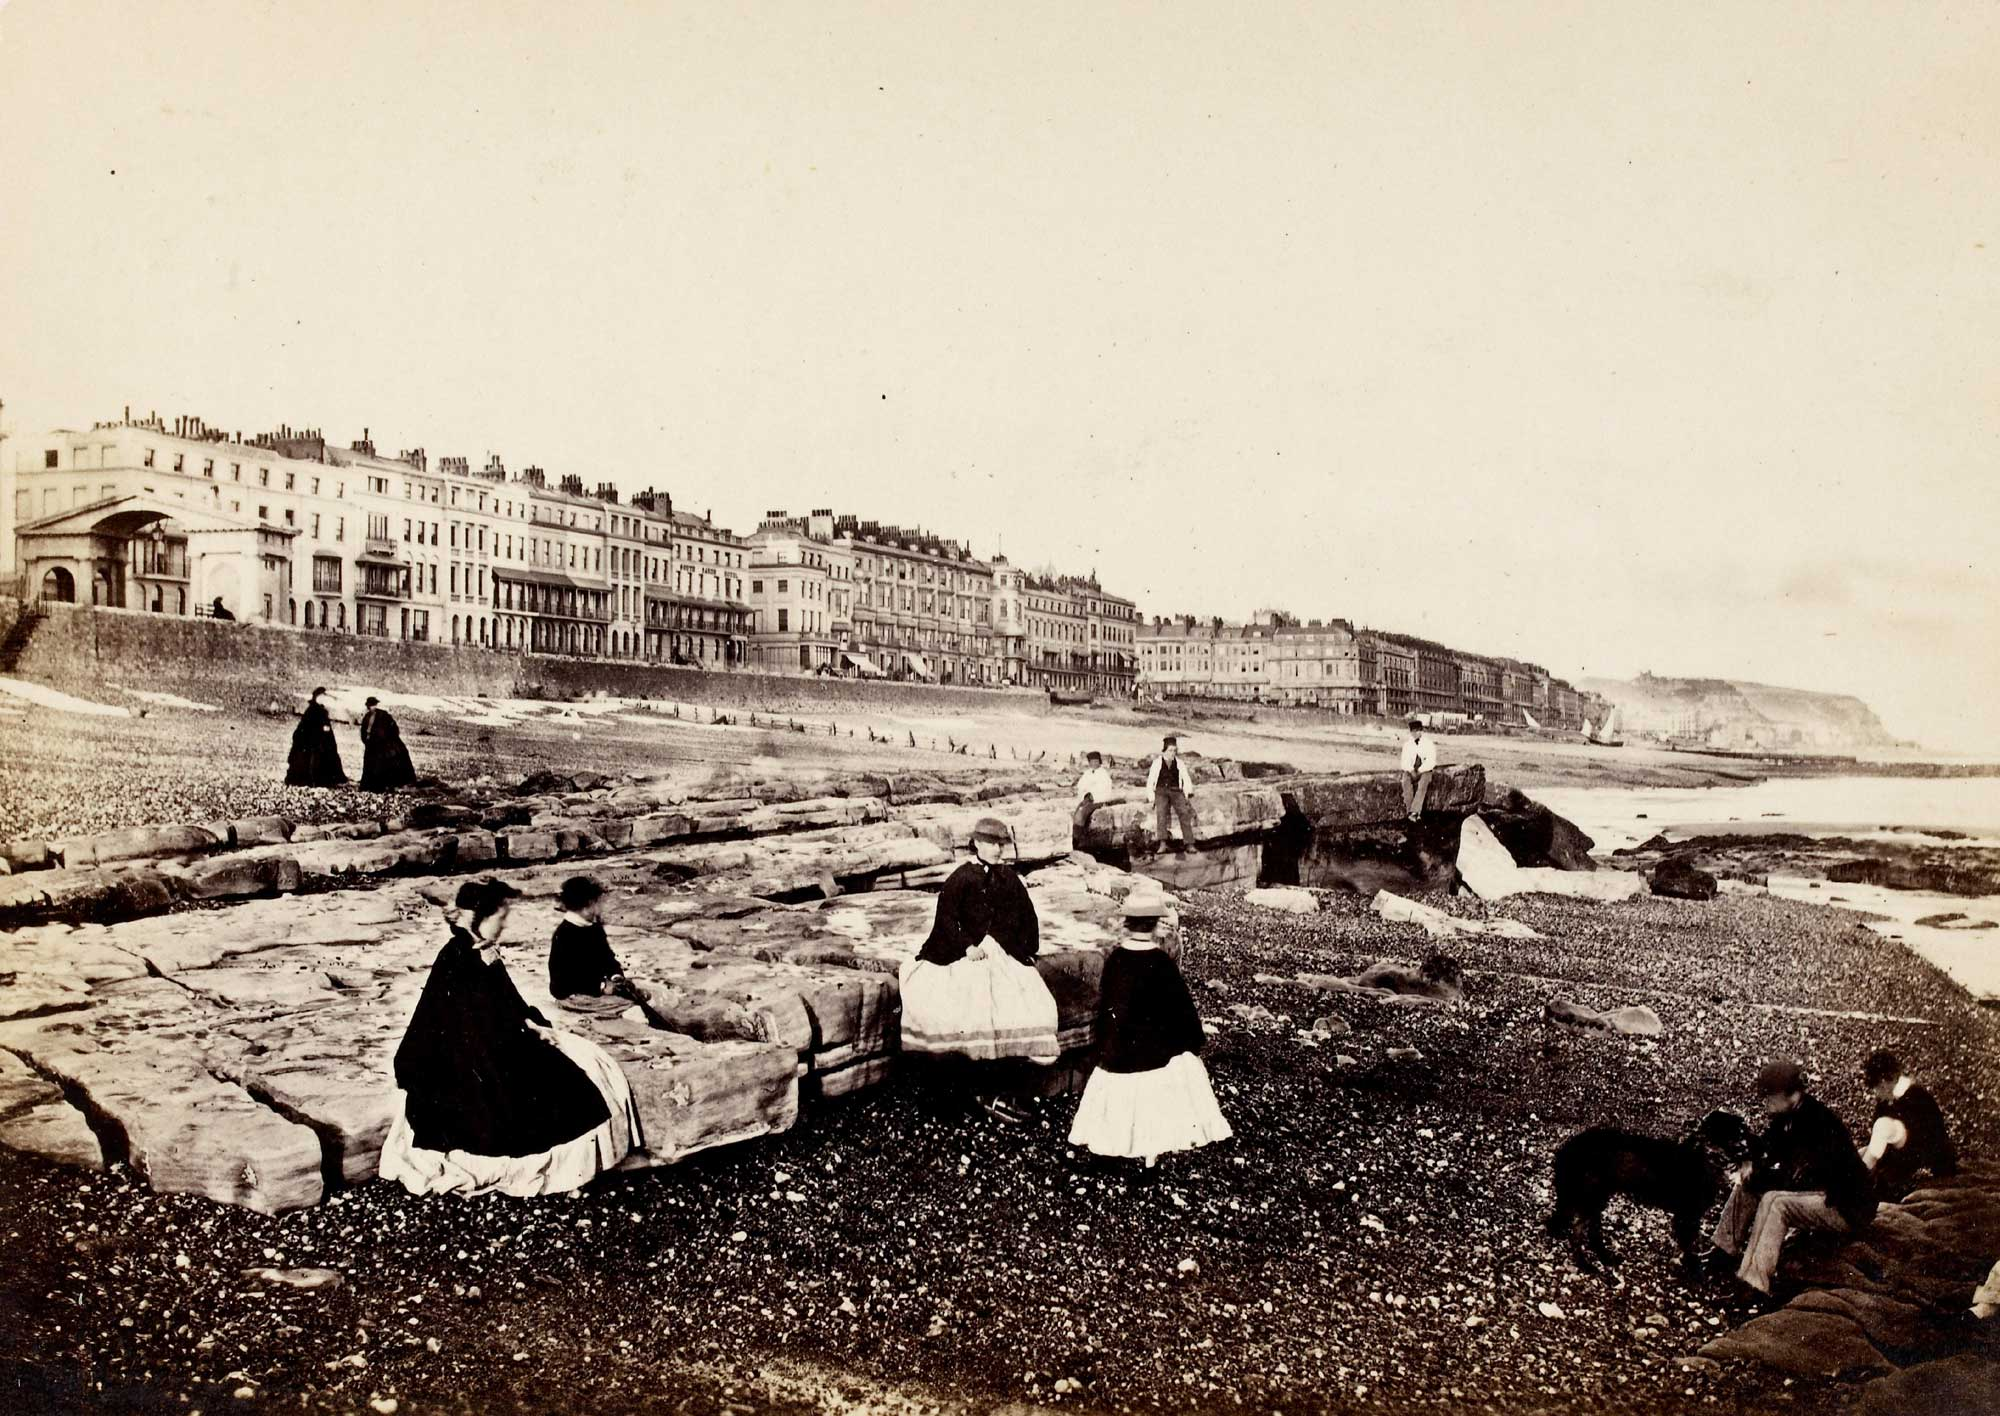 Photograph of the beach at Hastings, Sussex